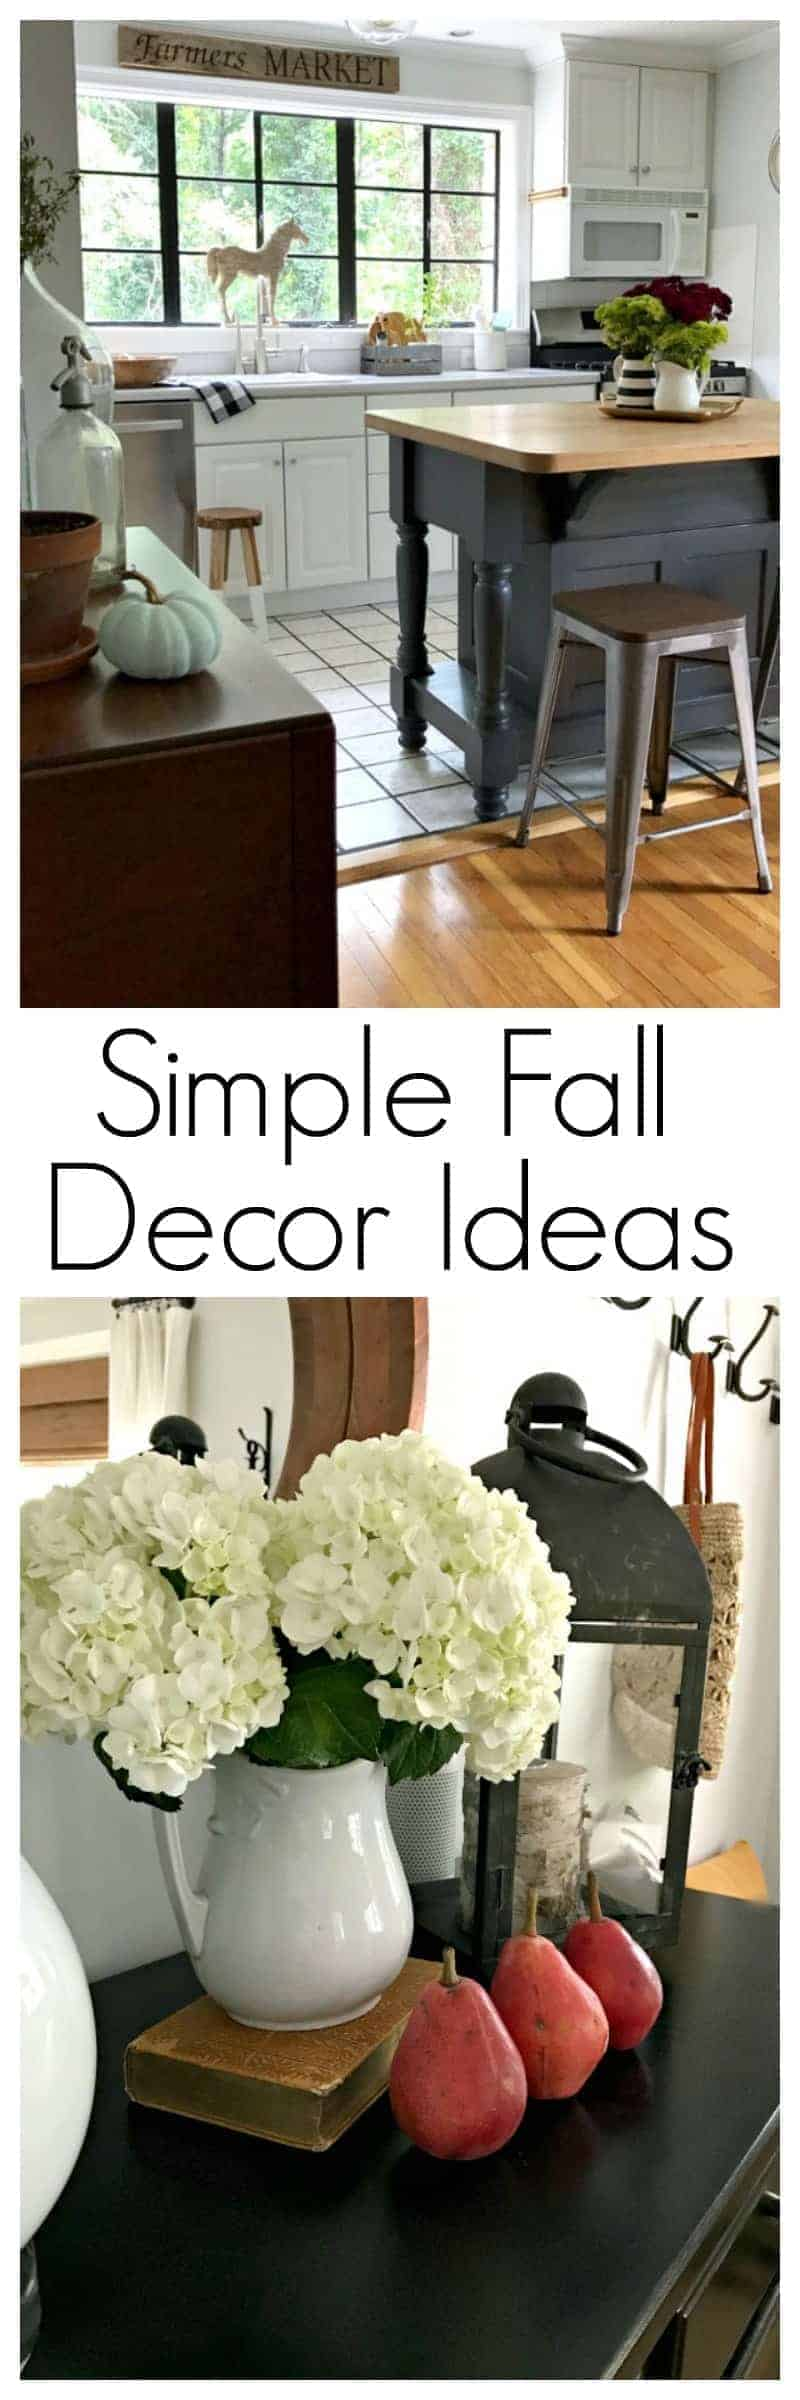 Sharing simple fall decor ideas and inspiration for a Welcome Fall Home Tour.